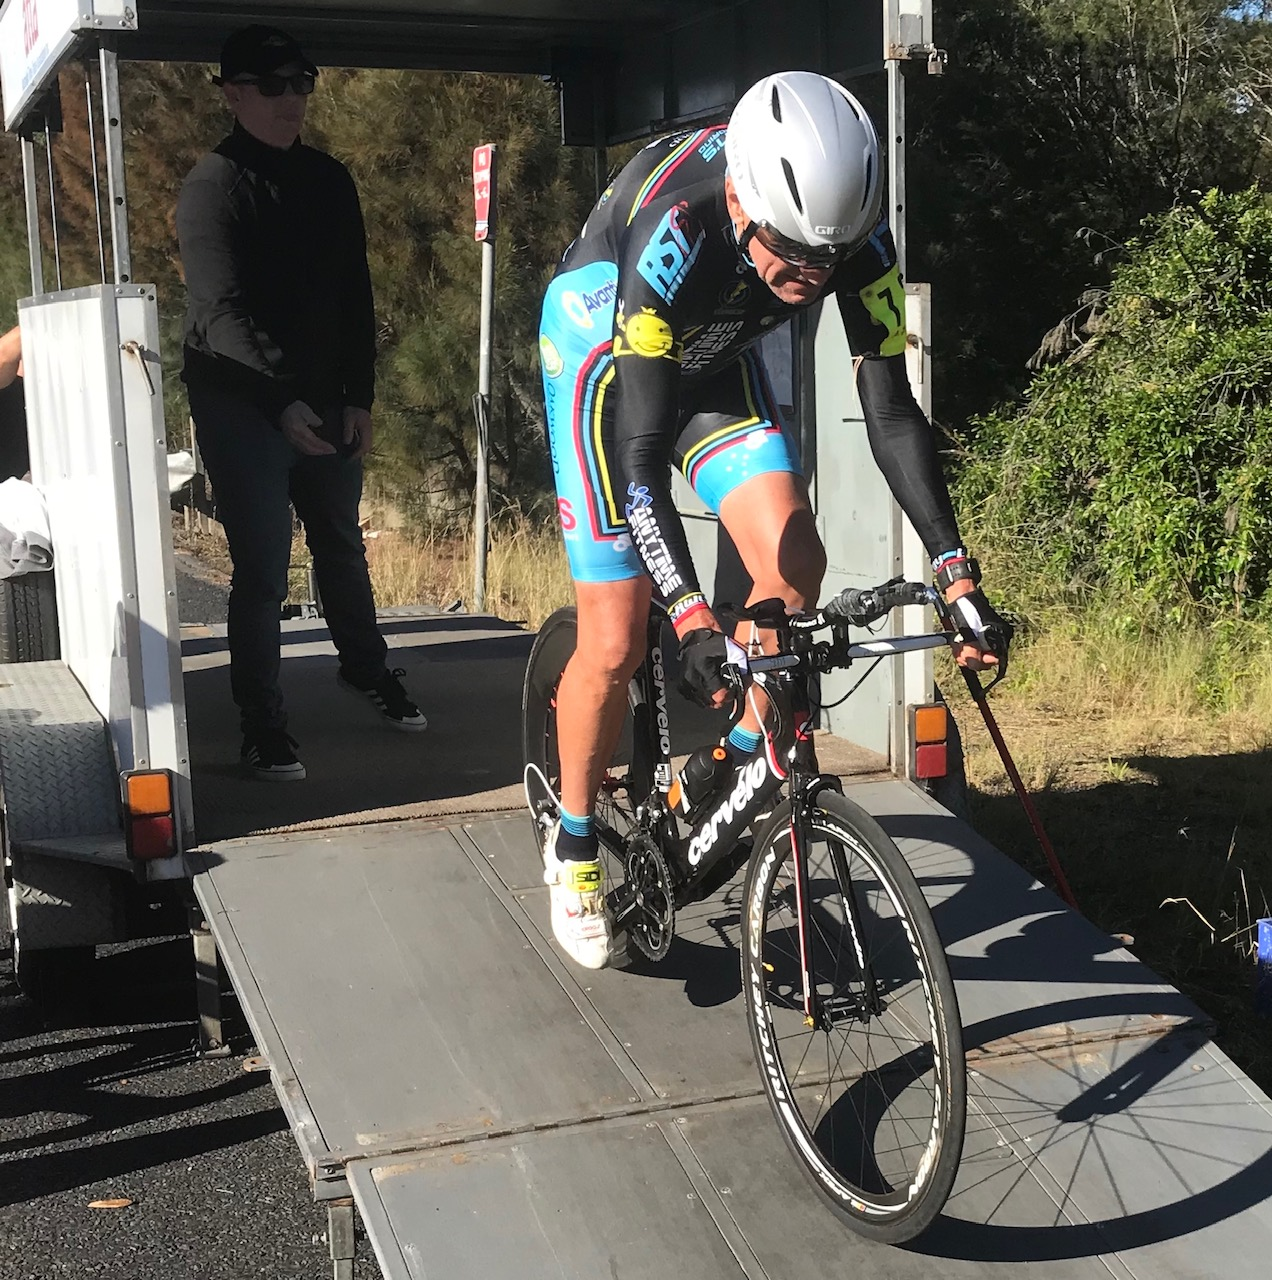 ATTA ITT @ Calga @ 5 May  -  David Browne  (BiciSport) is the ATTA starter out of the ITT ramp, with  Ian Grainger  a study of concentration